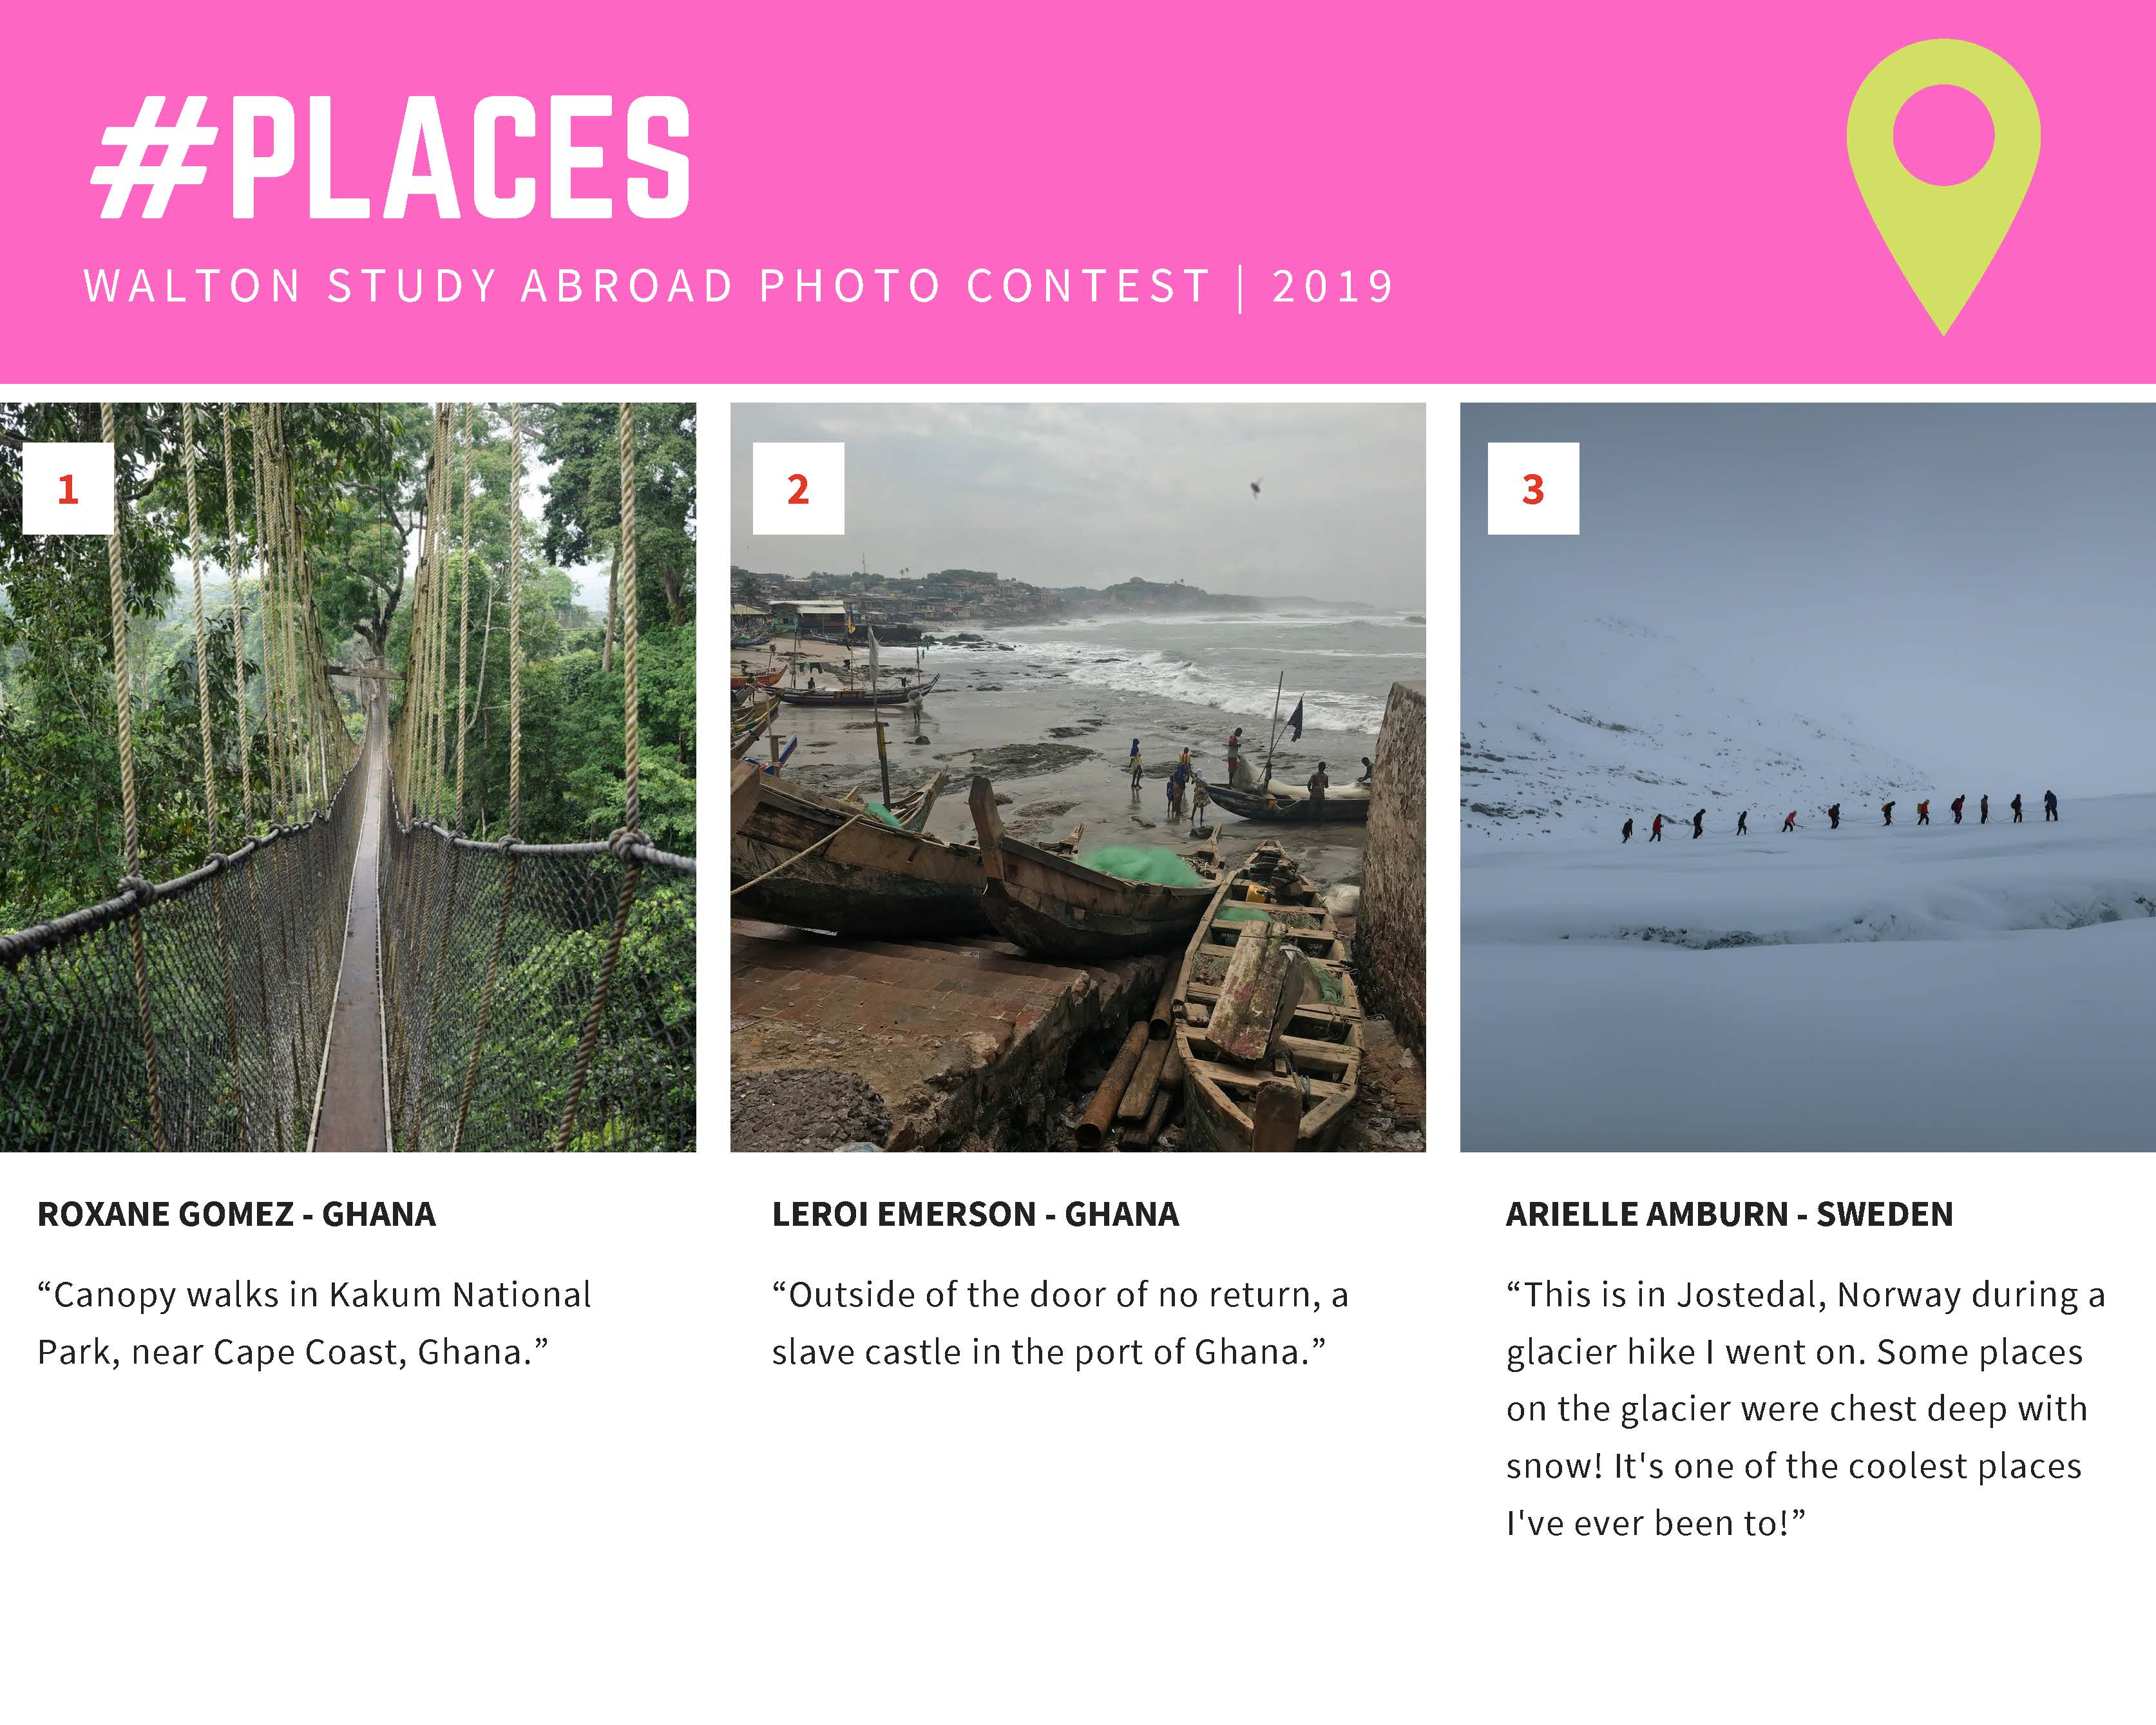 #places winners